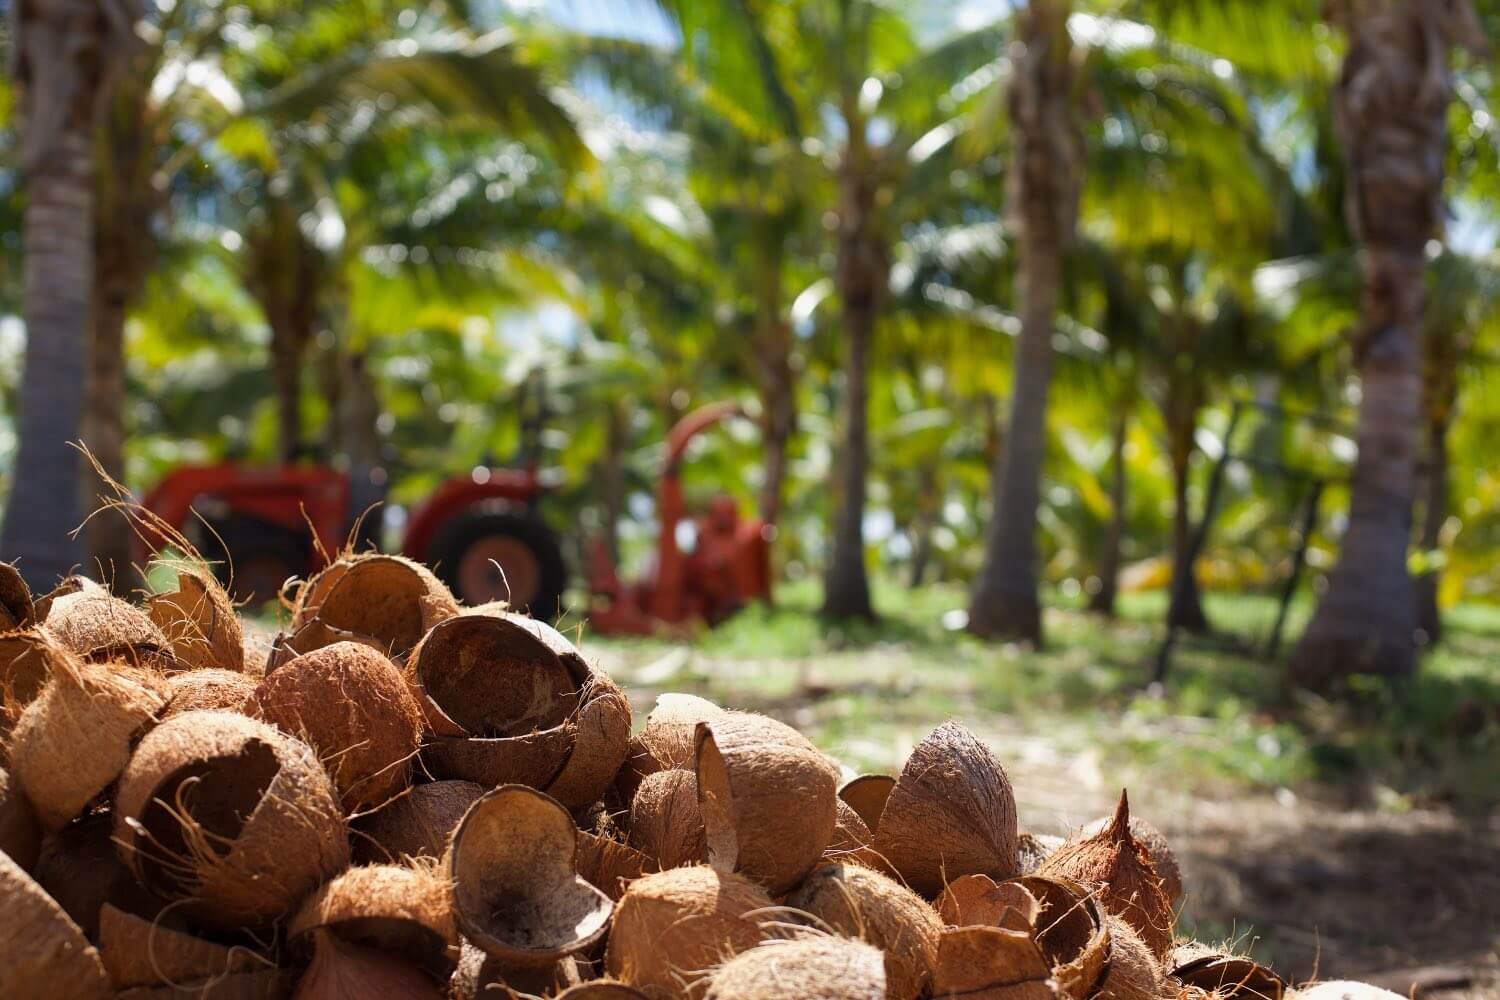 A pile of coconut shells on Maui